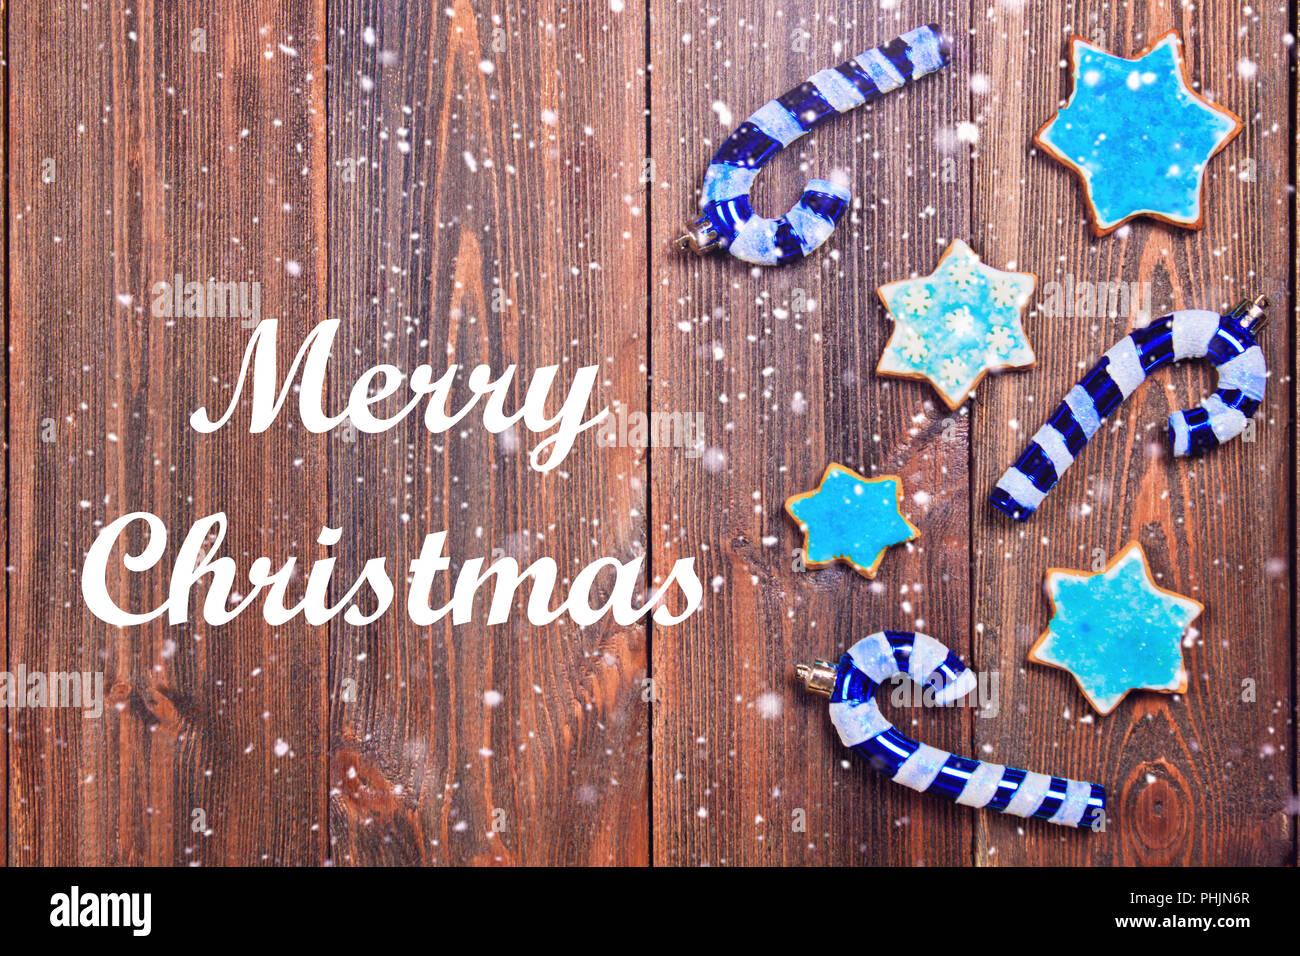 Merry Christmas Christmas Gingerbread Cookies Of A Blue Star With Christmas Tree Decorations On A Brown Wooden Table Copy Space Stock Photo Alamy